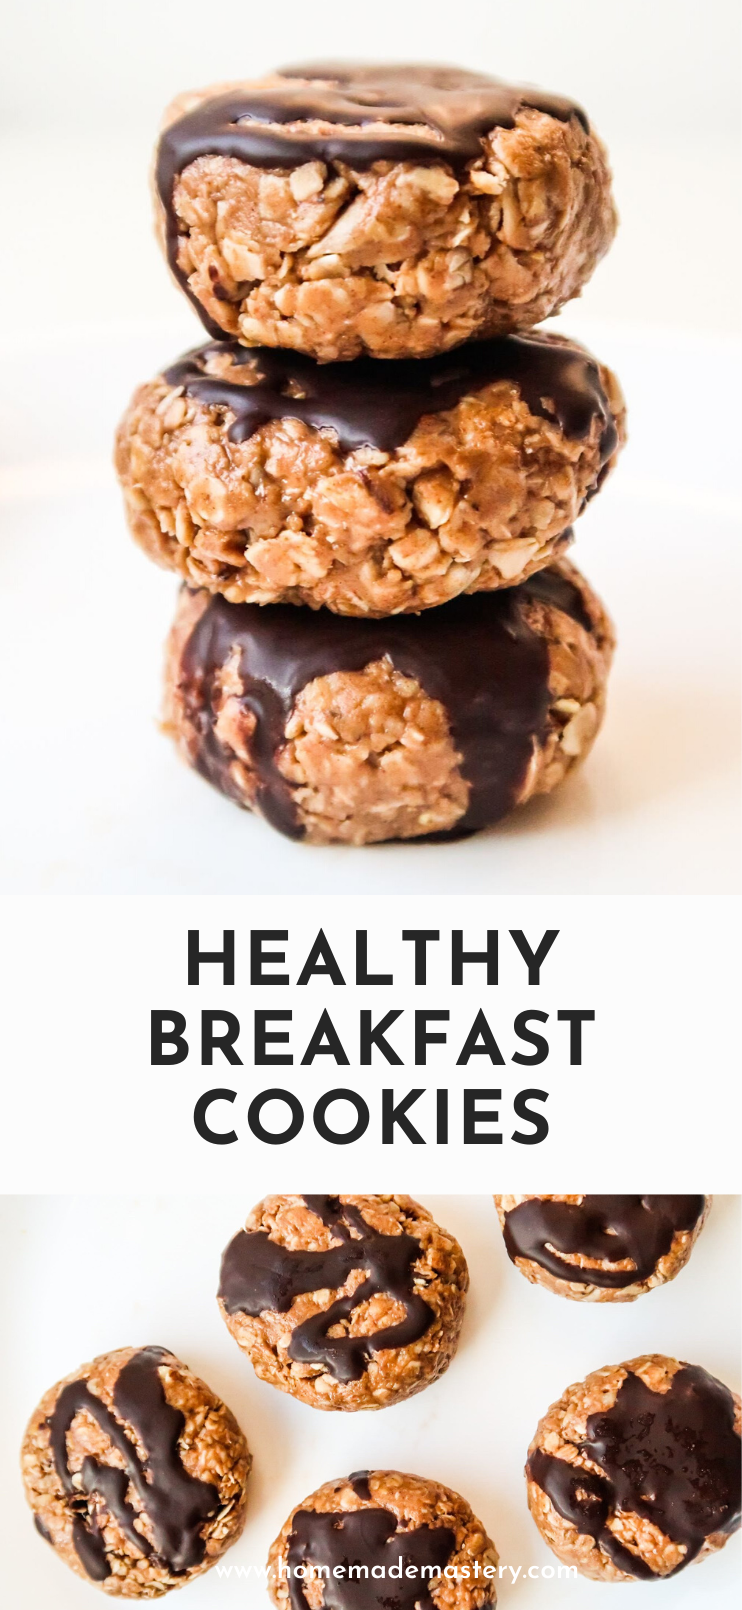 Easy healthy breakfast cookies! These homemade no-bake peanut butter cookies are the perfect breakfast on the go! They're a super easy meal prep breakfast idea that is ready in 10 minutes!